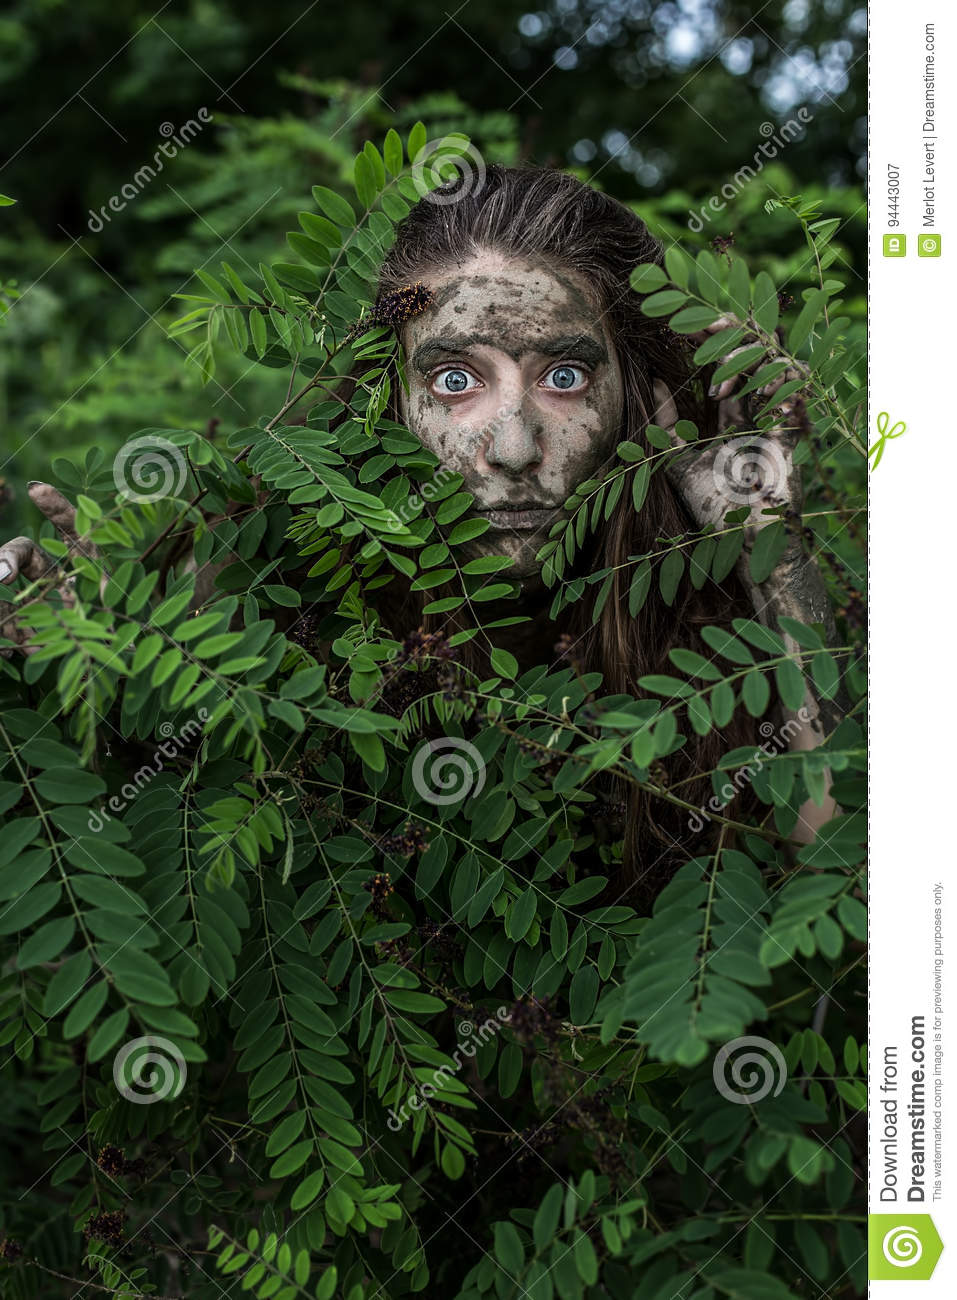 Woman Hiding Bush Photos - Free & Royalty-Free Stock Photos from Dreamstime